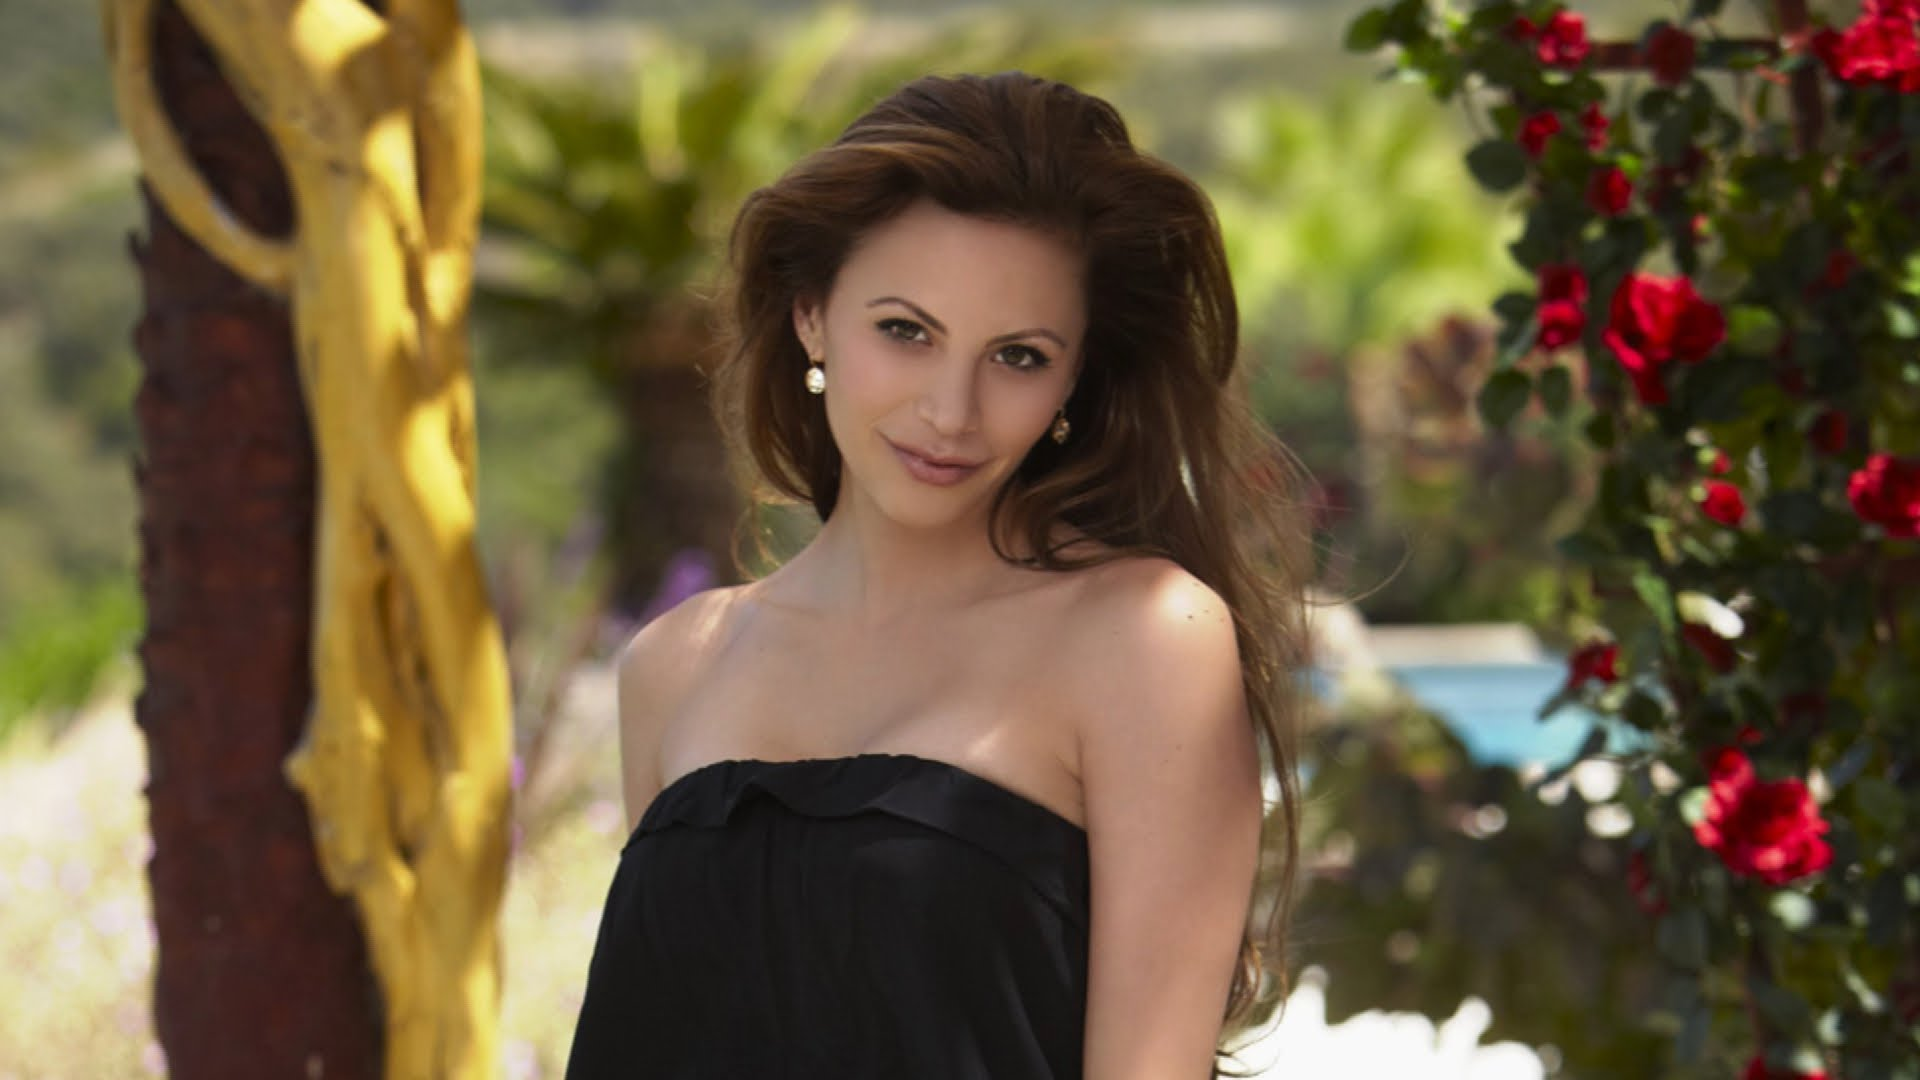 Gia Allemand Nice Wallpapers